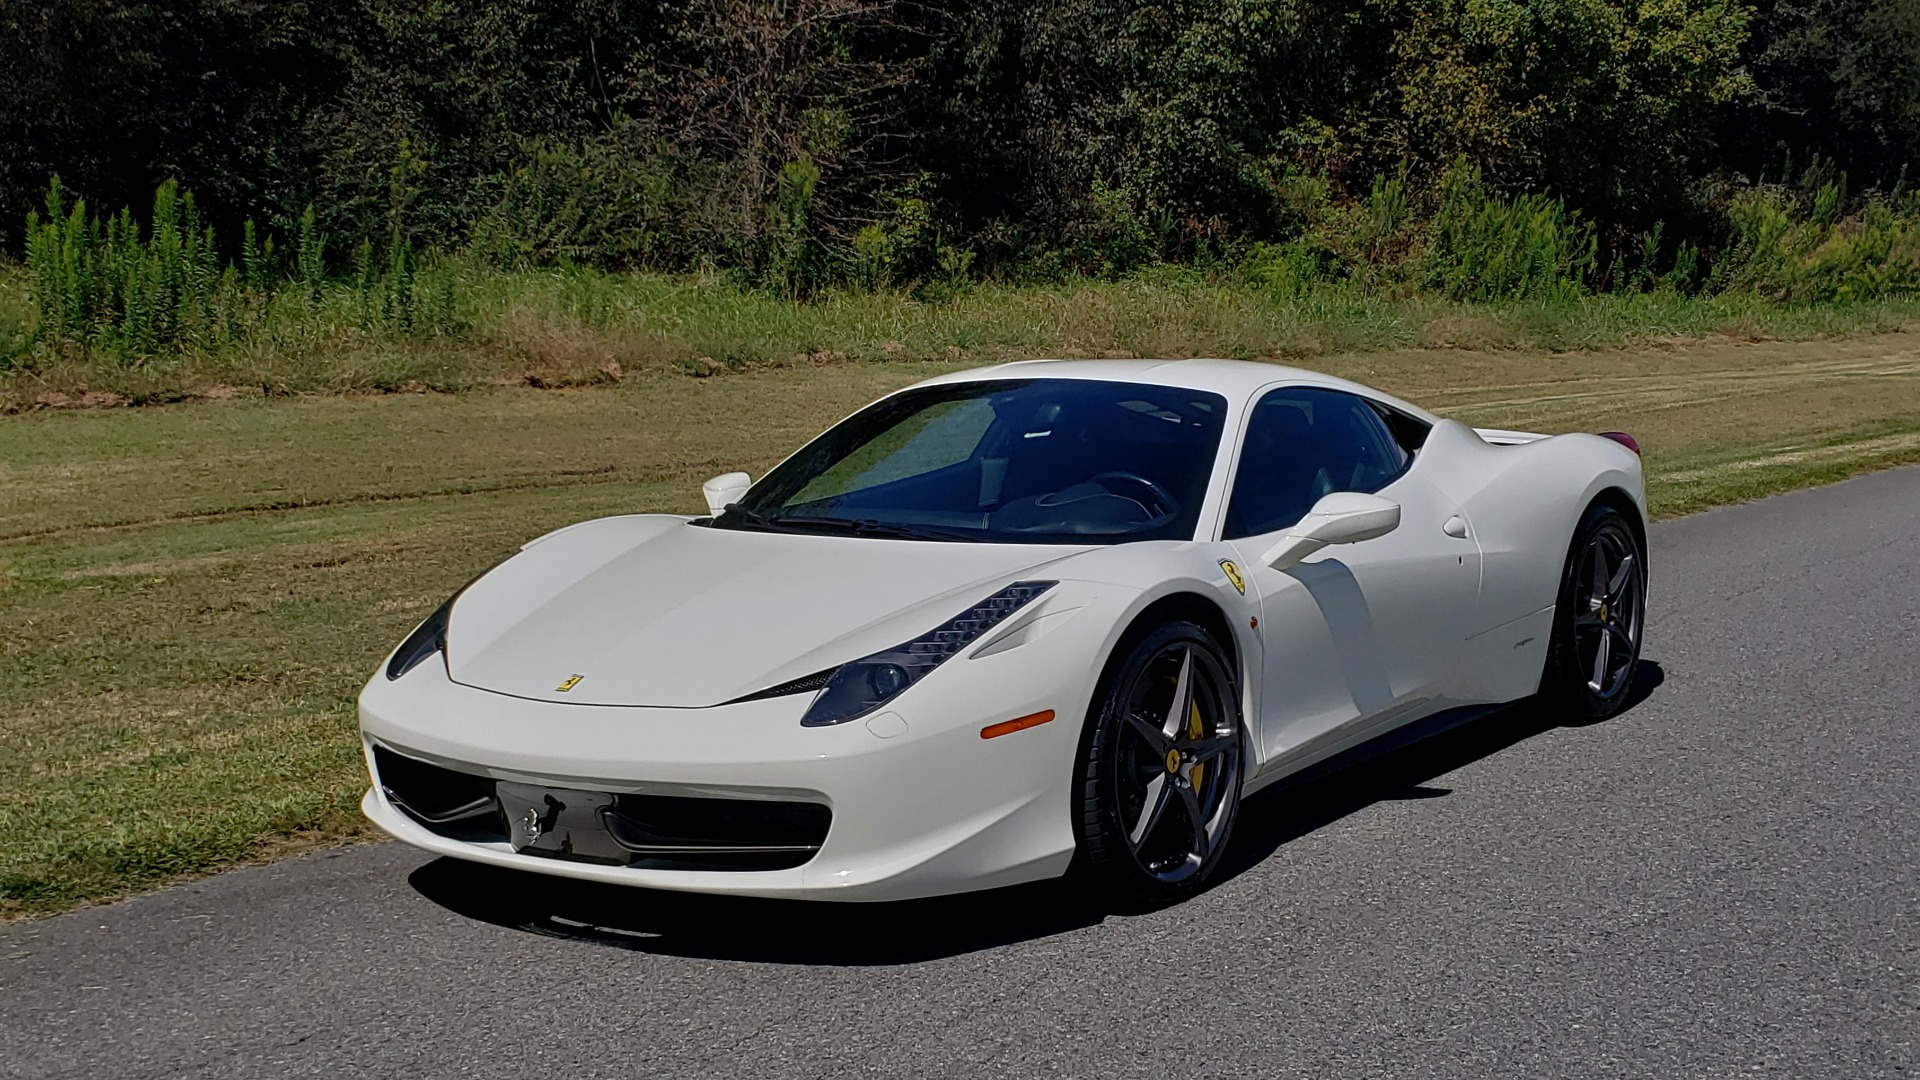 Used 2012 Ferrari 458 ITALIA COUPE / 4.5L V8 / 7-SPEED AUTO / LOW MILES SUPER CLEAN for sale $169,999 at Formula Imports in Charlotte NC 28227 8